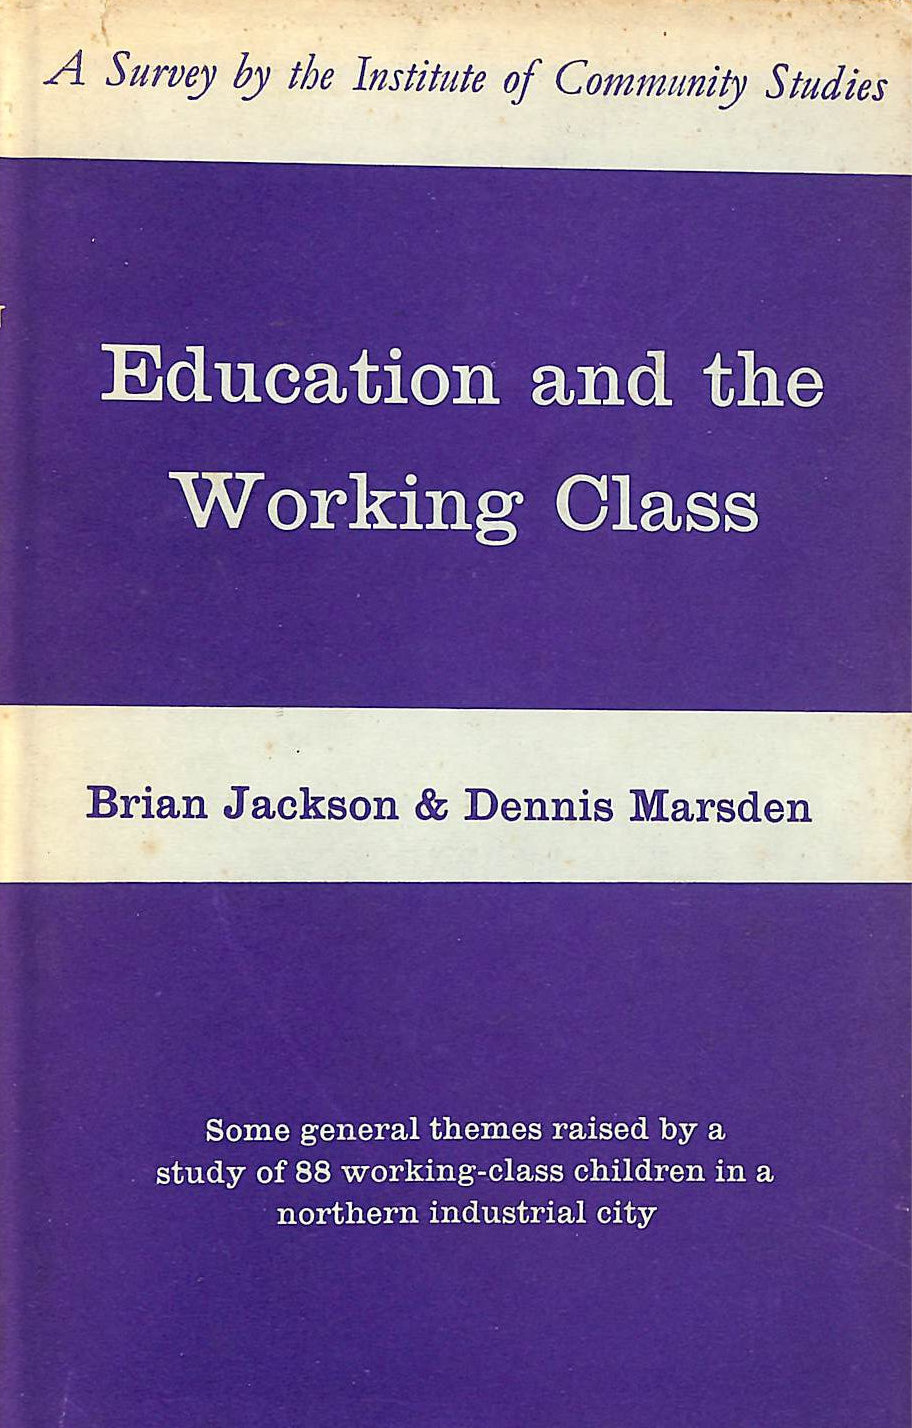 Image for Education and the working class: Some general themes raised by a study of 88 working class children in a northern industrial city (Institute of Community Studies Reports no.6)